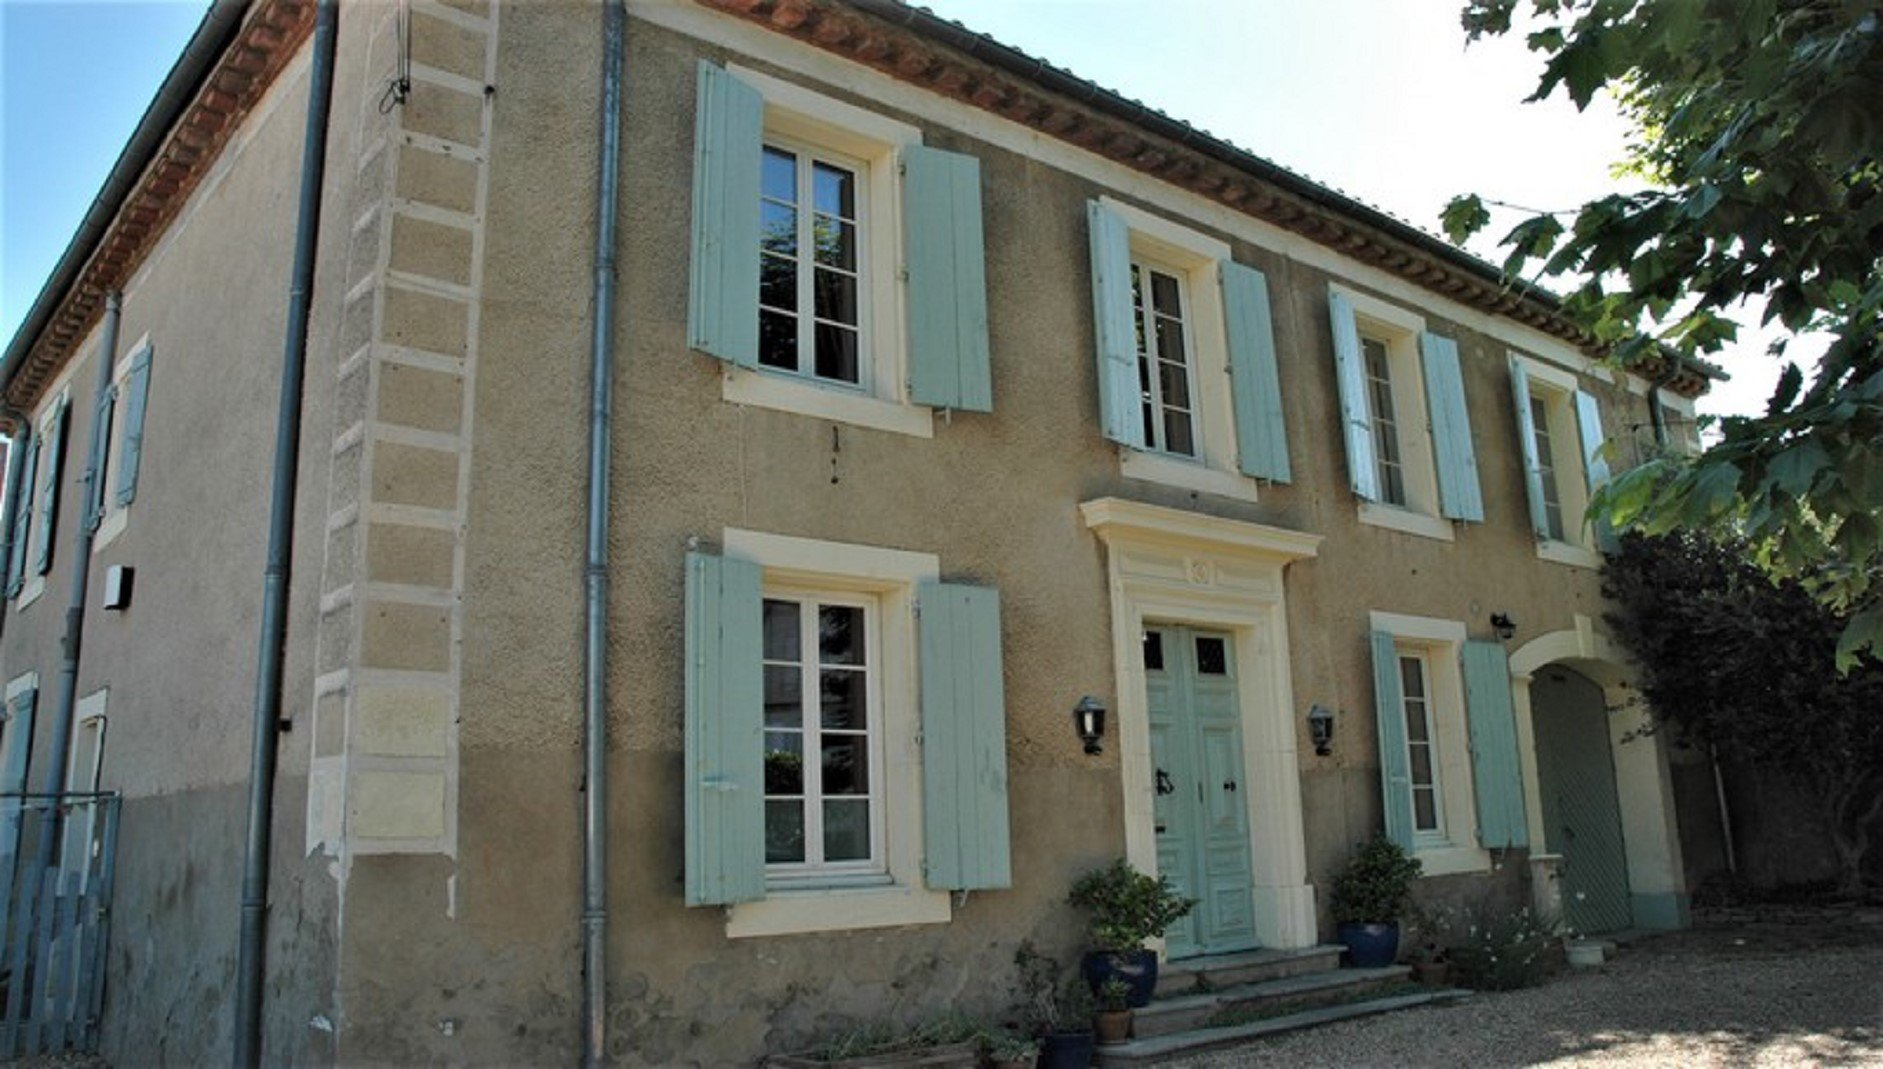 Maison de maître with garden and pool